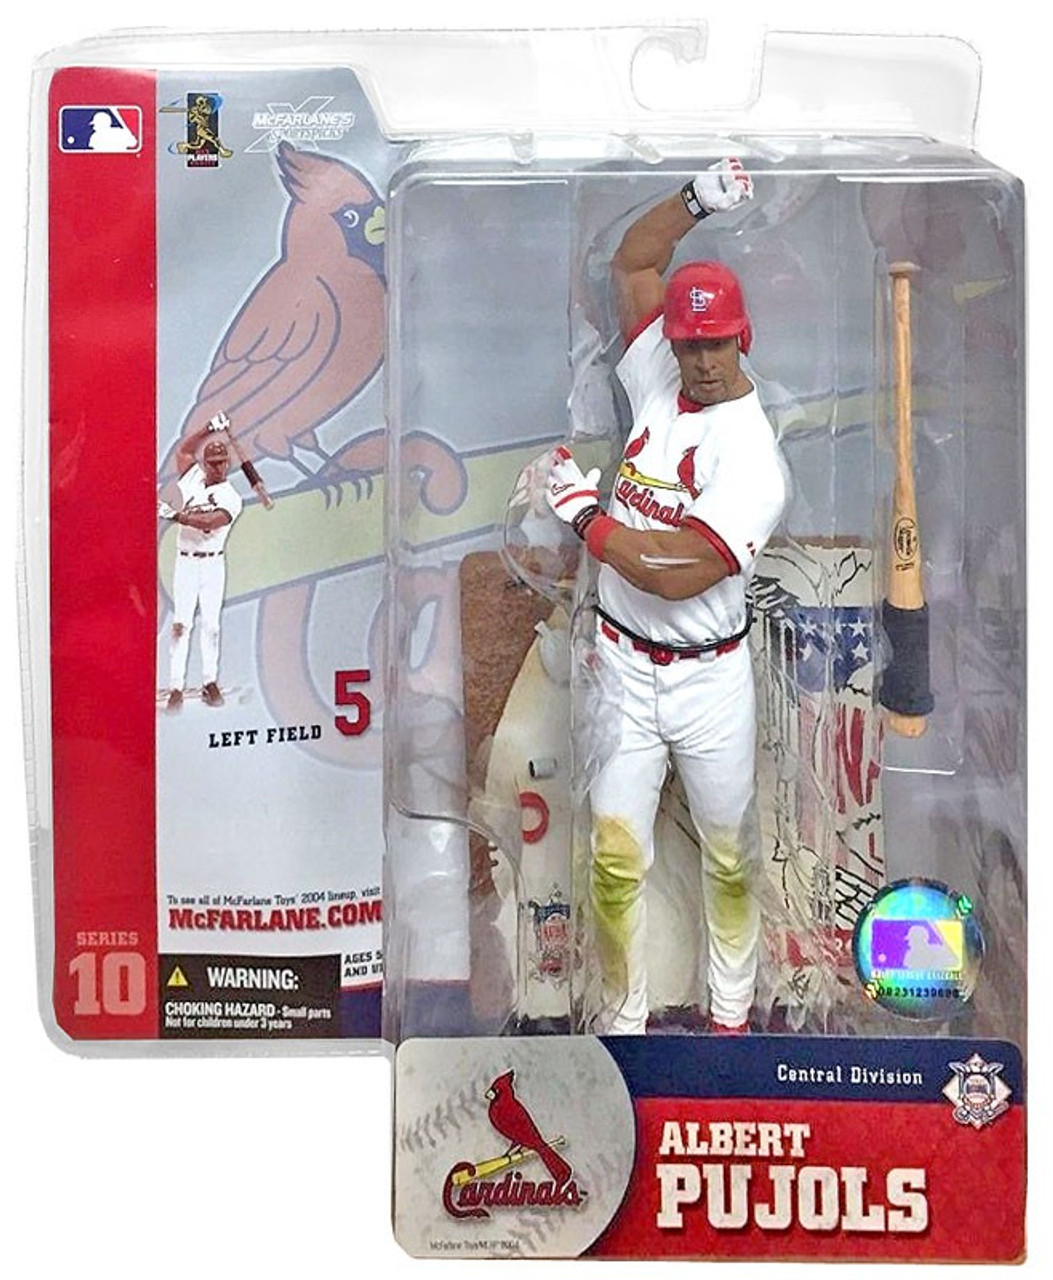 McFarlane Toys MLB St. Louis Cardinals Sports Picks Series 10 Albert Pujols Action Figure [White Jersey]